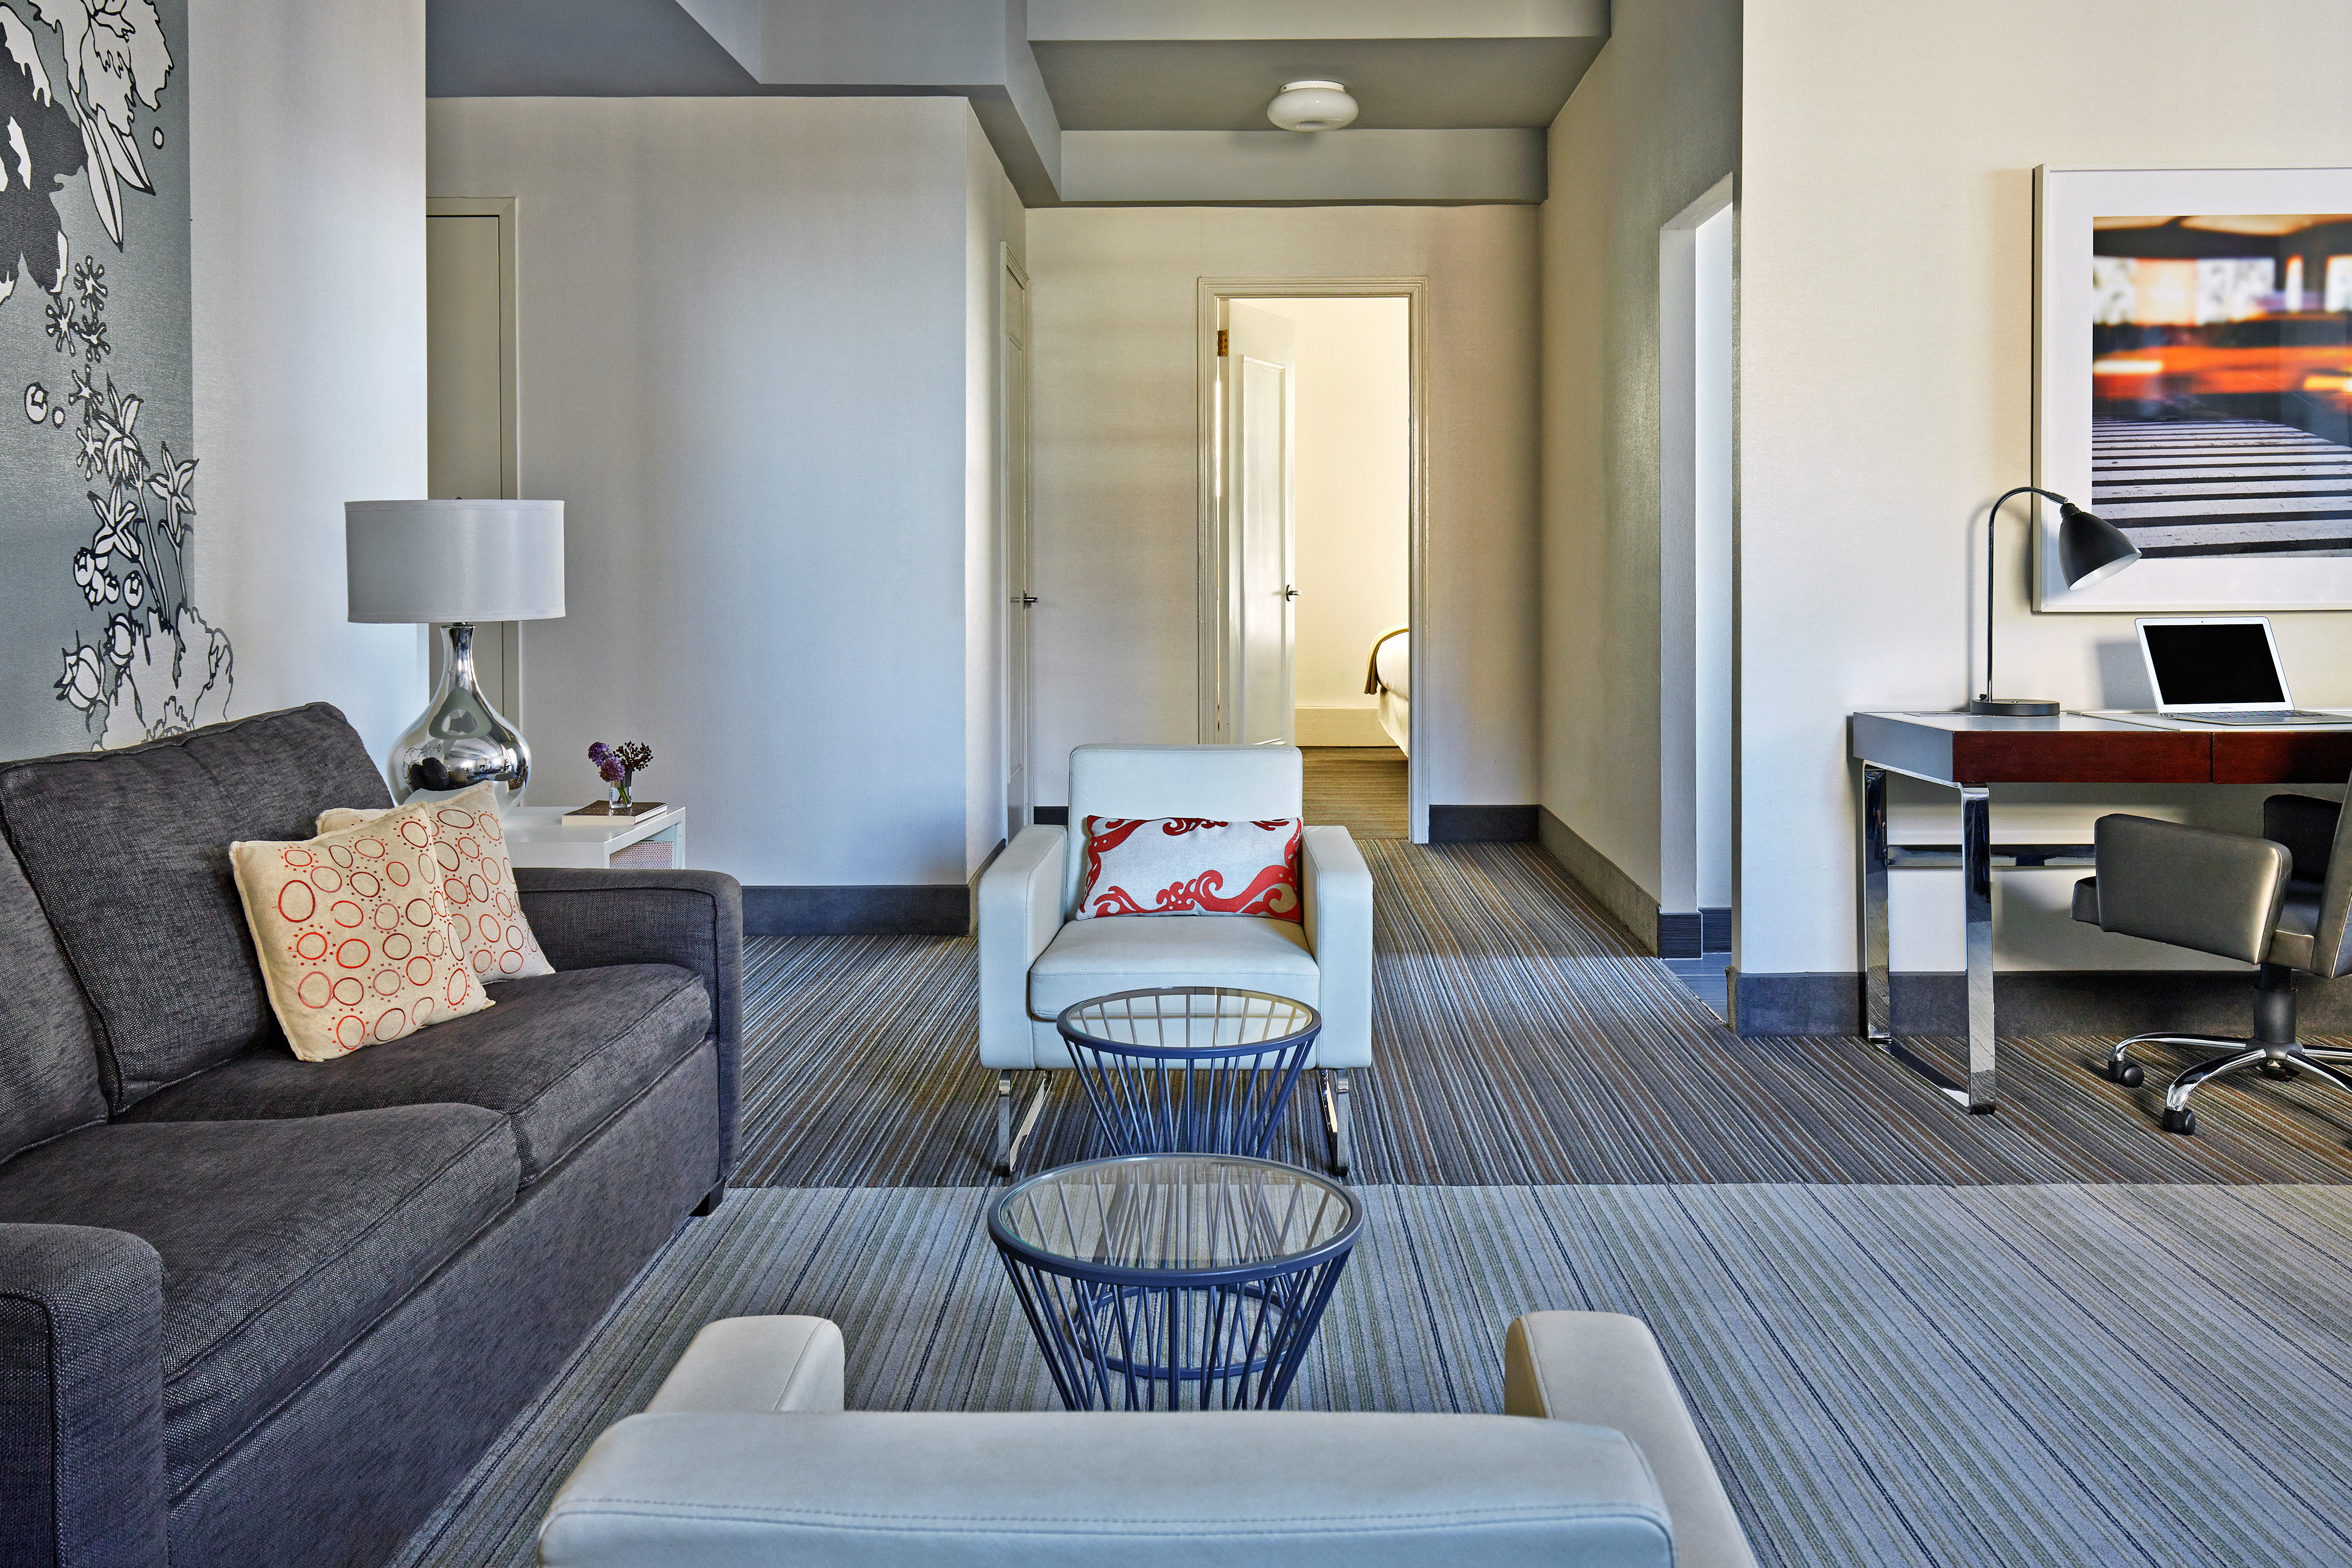 Boutique City Modern property living room home Suite condominium cottage Bedroom colored